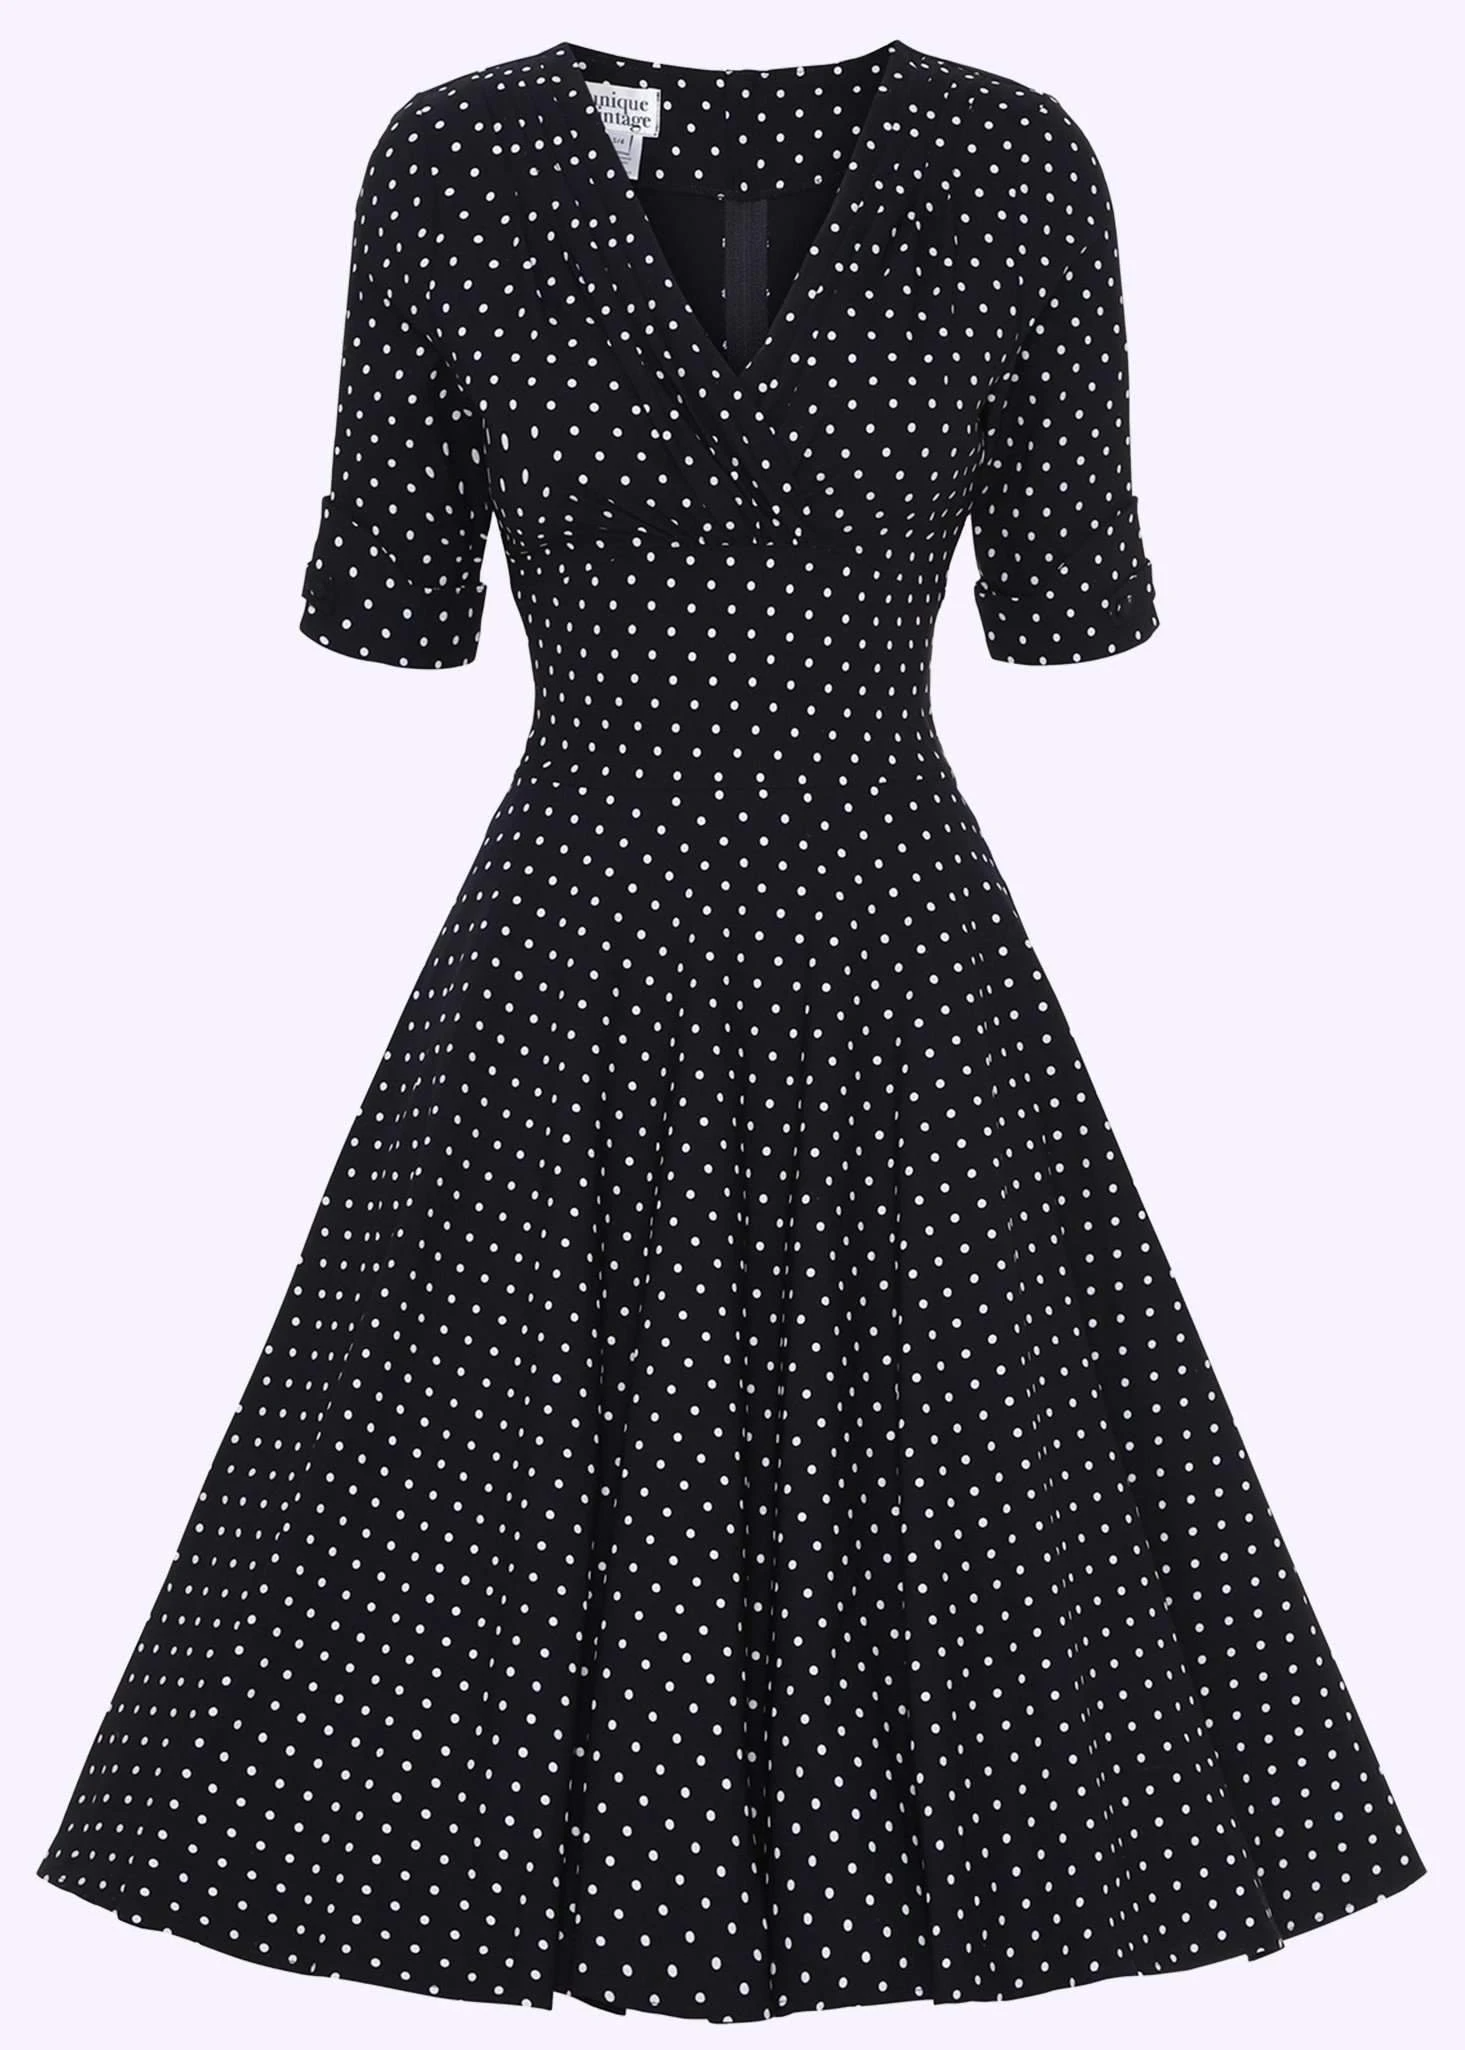 Unique Vintage swing dress with dots